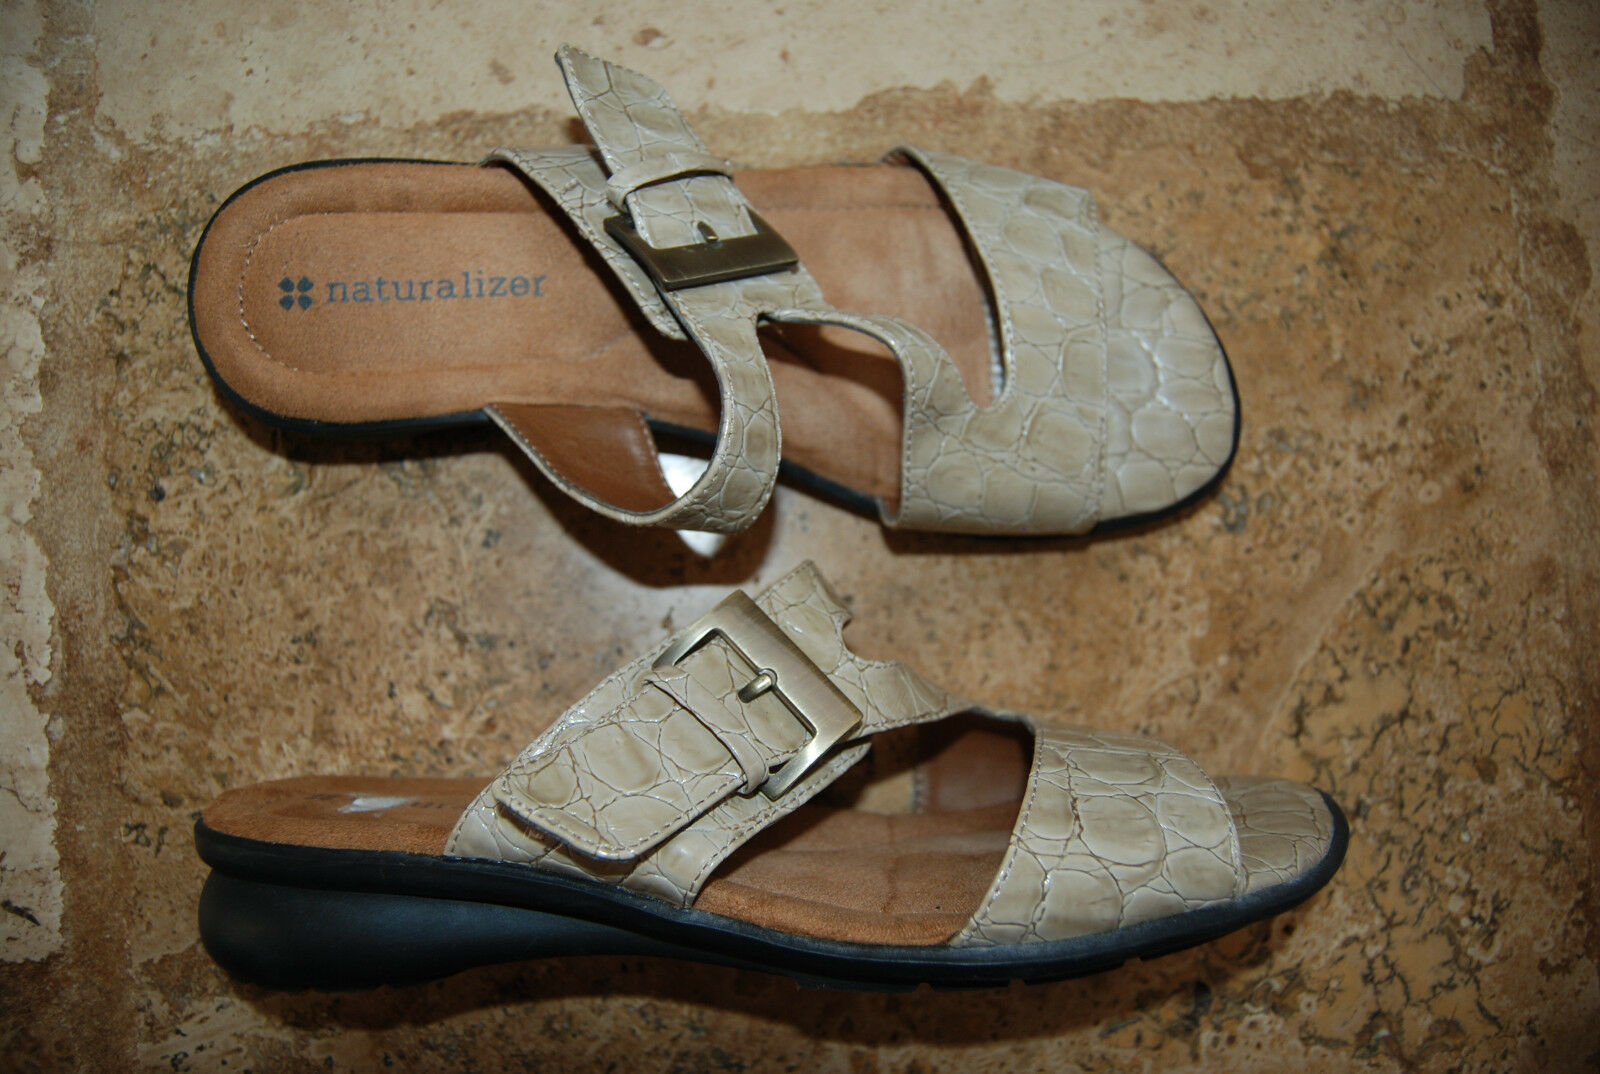 Tan Croc OpenToe Embossed Faux Leather NATURALIZER OpenToe Croc Slides w/Big Buckle 7.5 M 527625